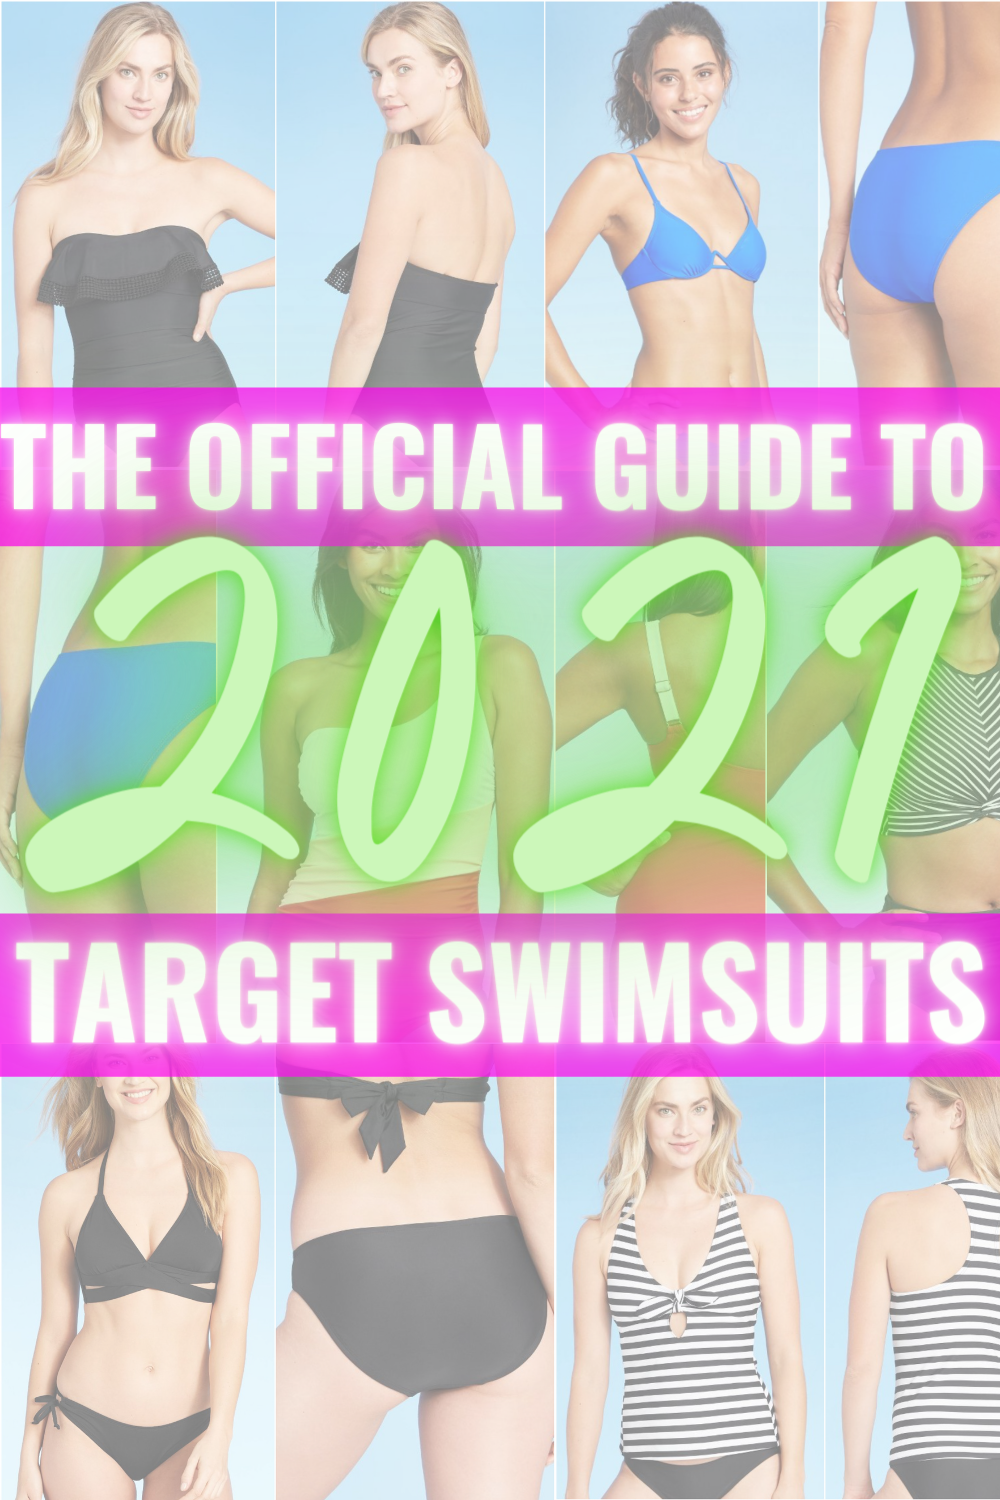 THE OFFICIAL GUIDE TO TARGET SWIMSUITS 2021 - A complete fit and style guide for Target's 2018 swimwear line including sizing + links! | Target Women's Swimsuits - Target Bikinis - One Piece Swimsuit Target - Target Swimsuits 2021